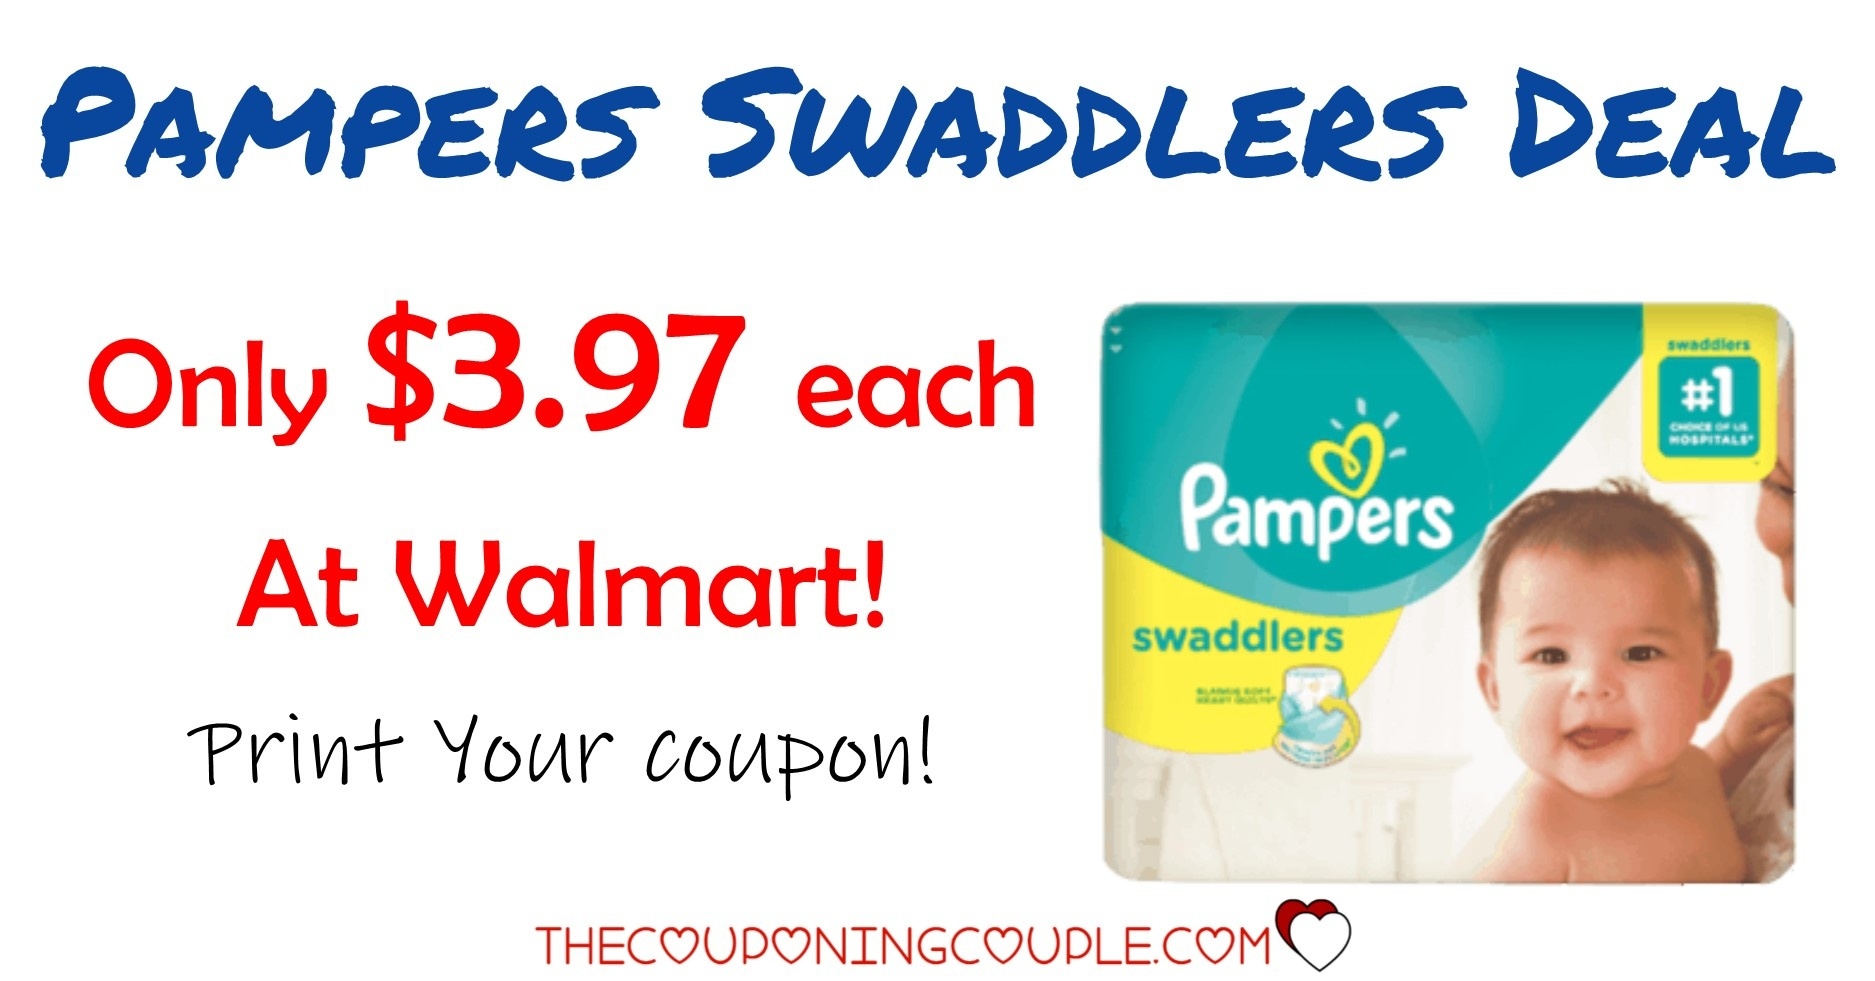 Pampers Swaddlers Deals! Only $3.97 @walmart! - Free Printable Pampers Swaddlers Coupons